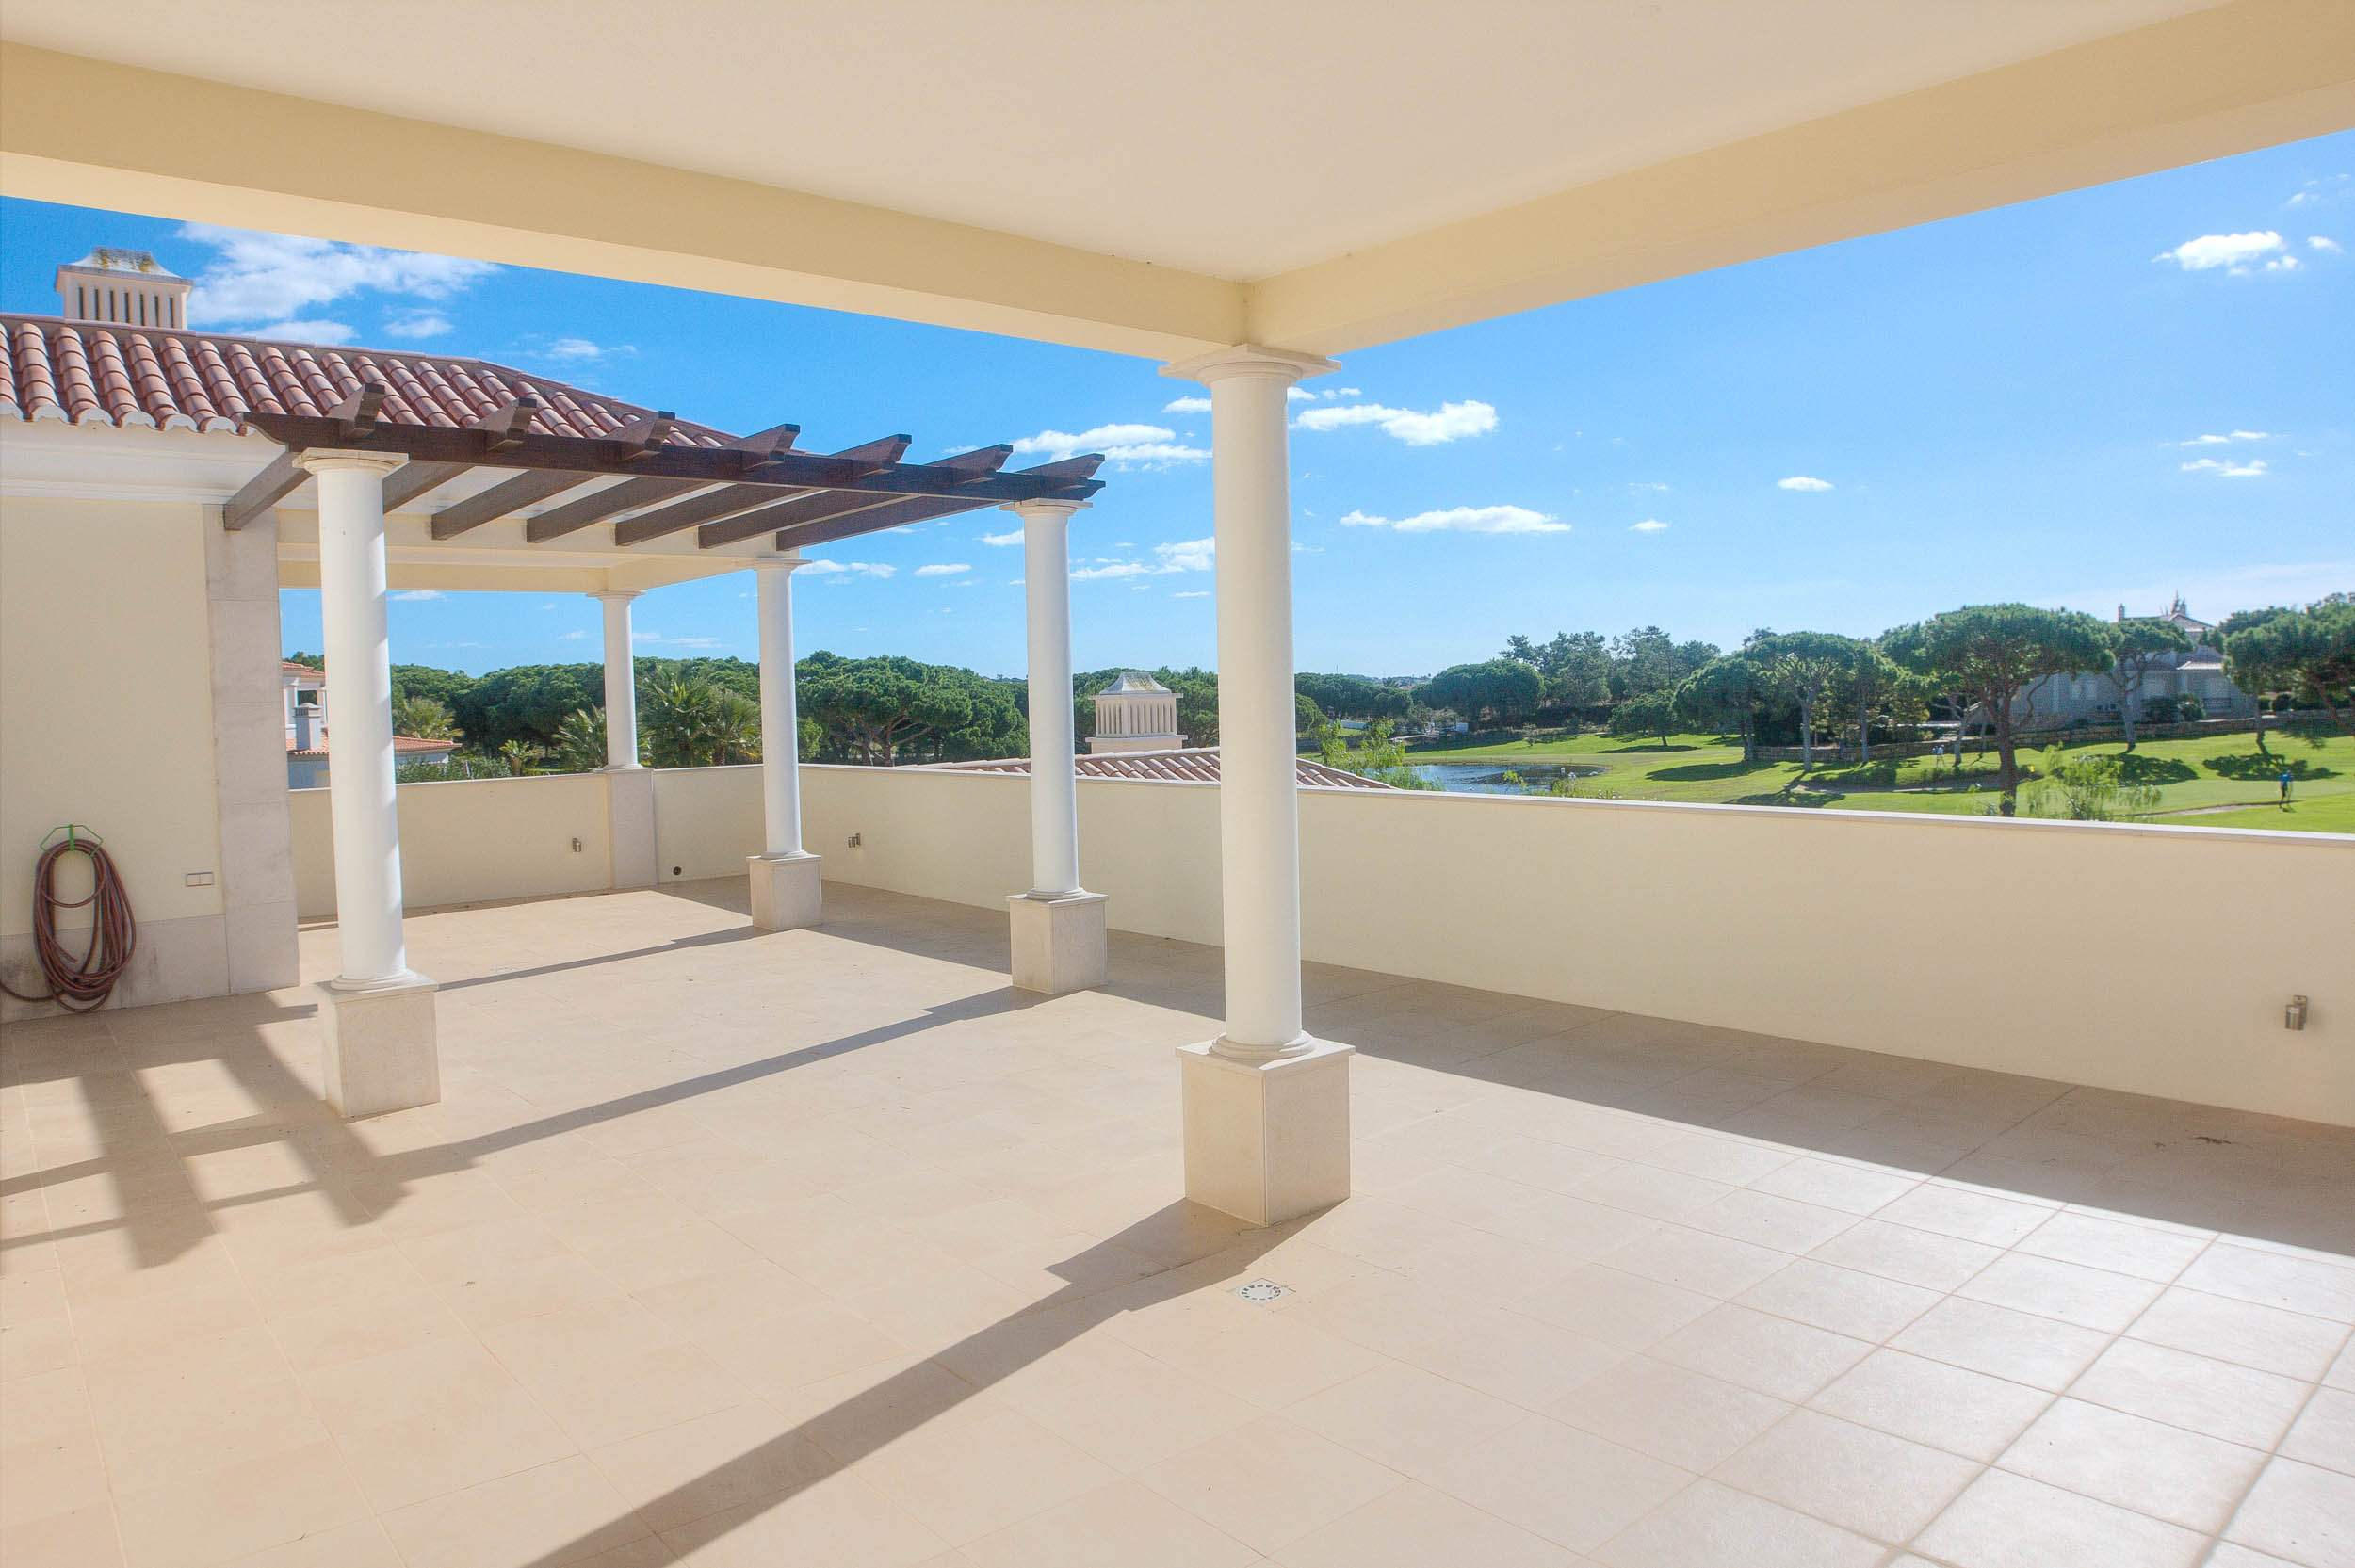 Villa Vida Doce, 6 bedroom villa in Vilamoura Area, Algarve Photo #28